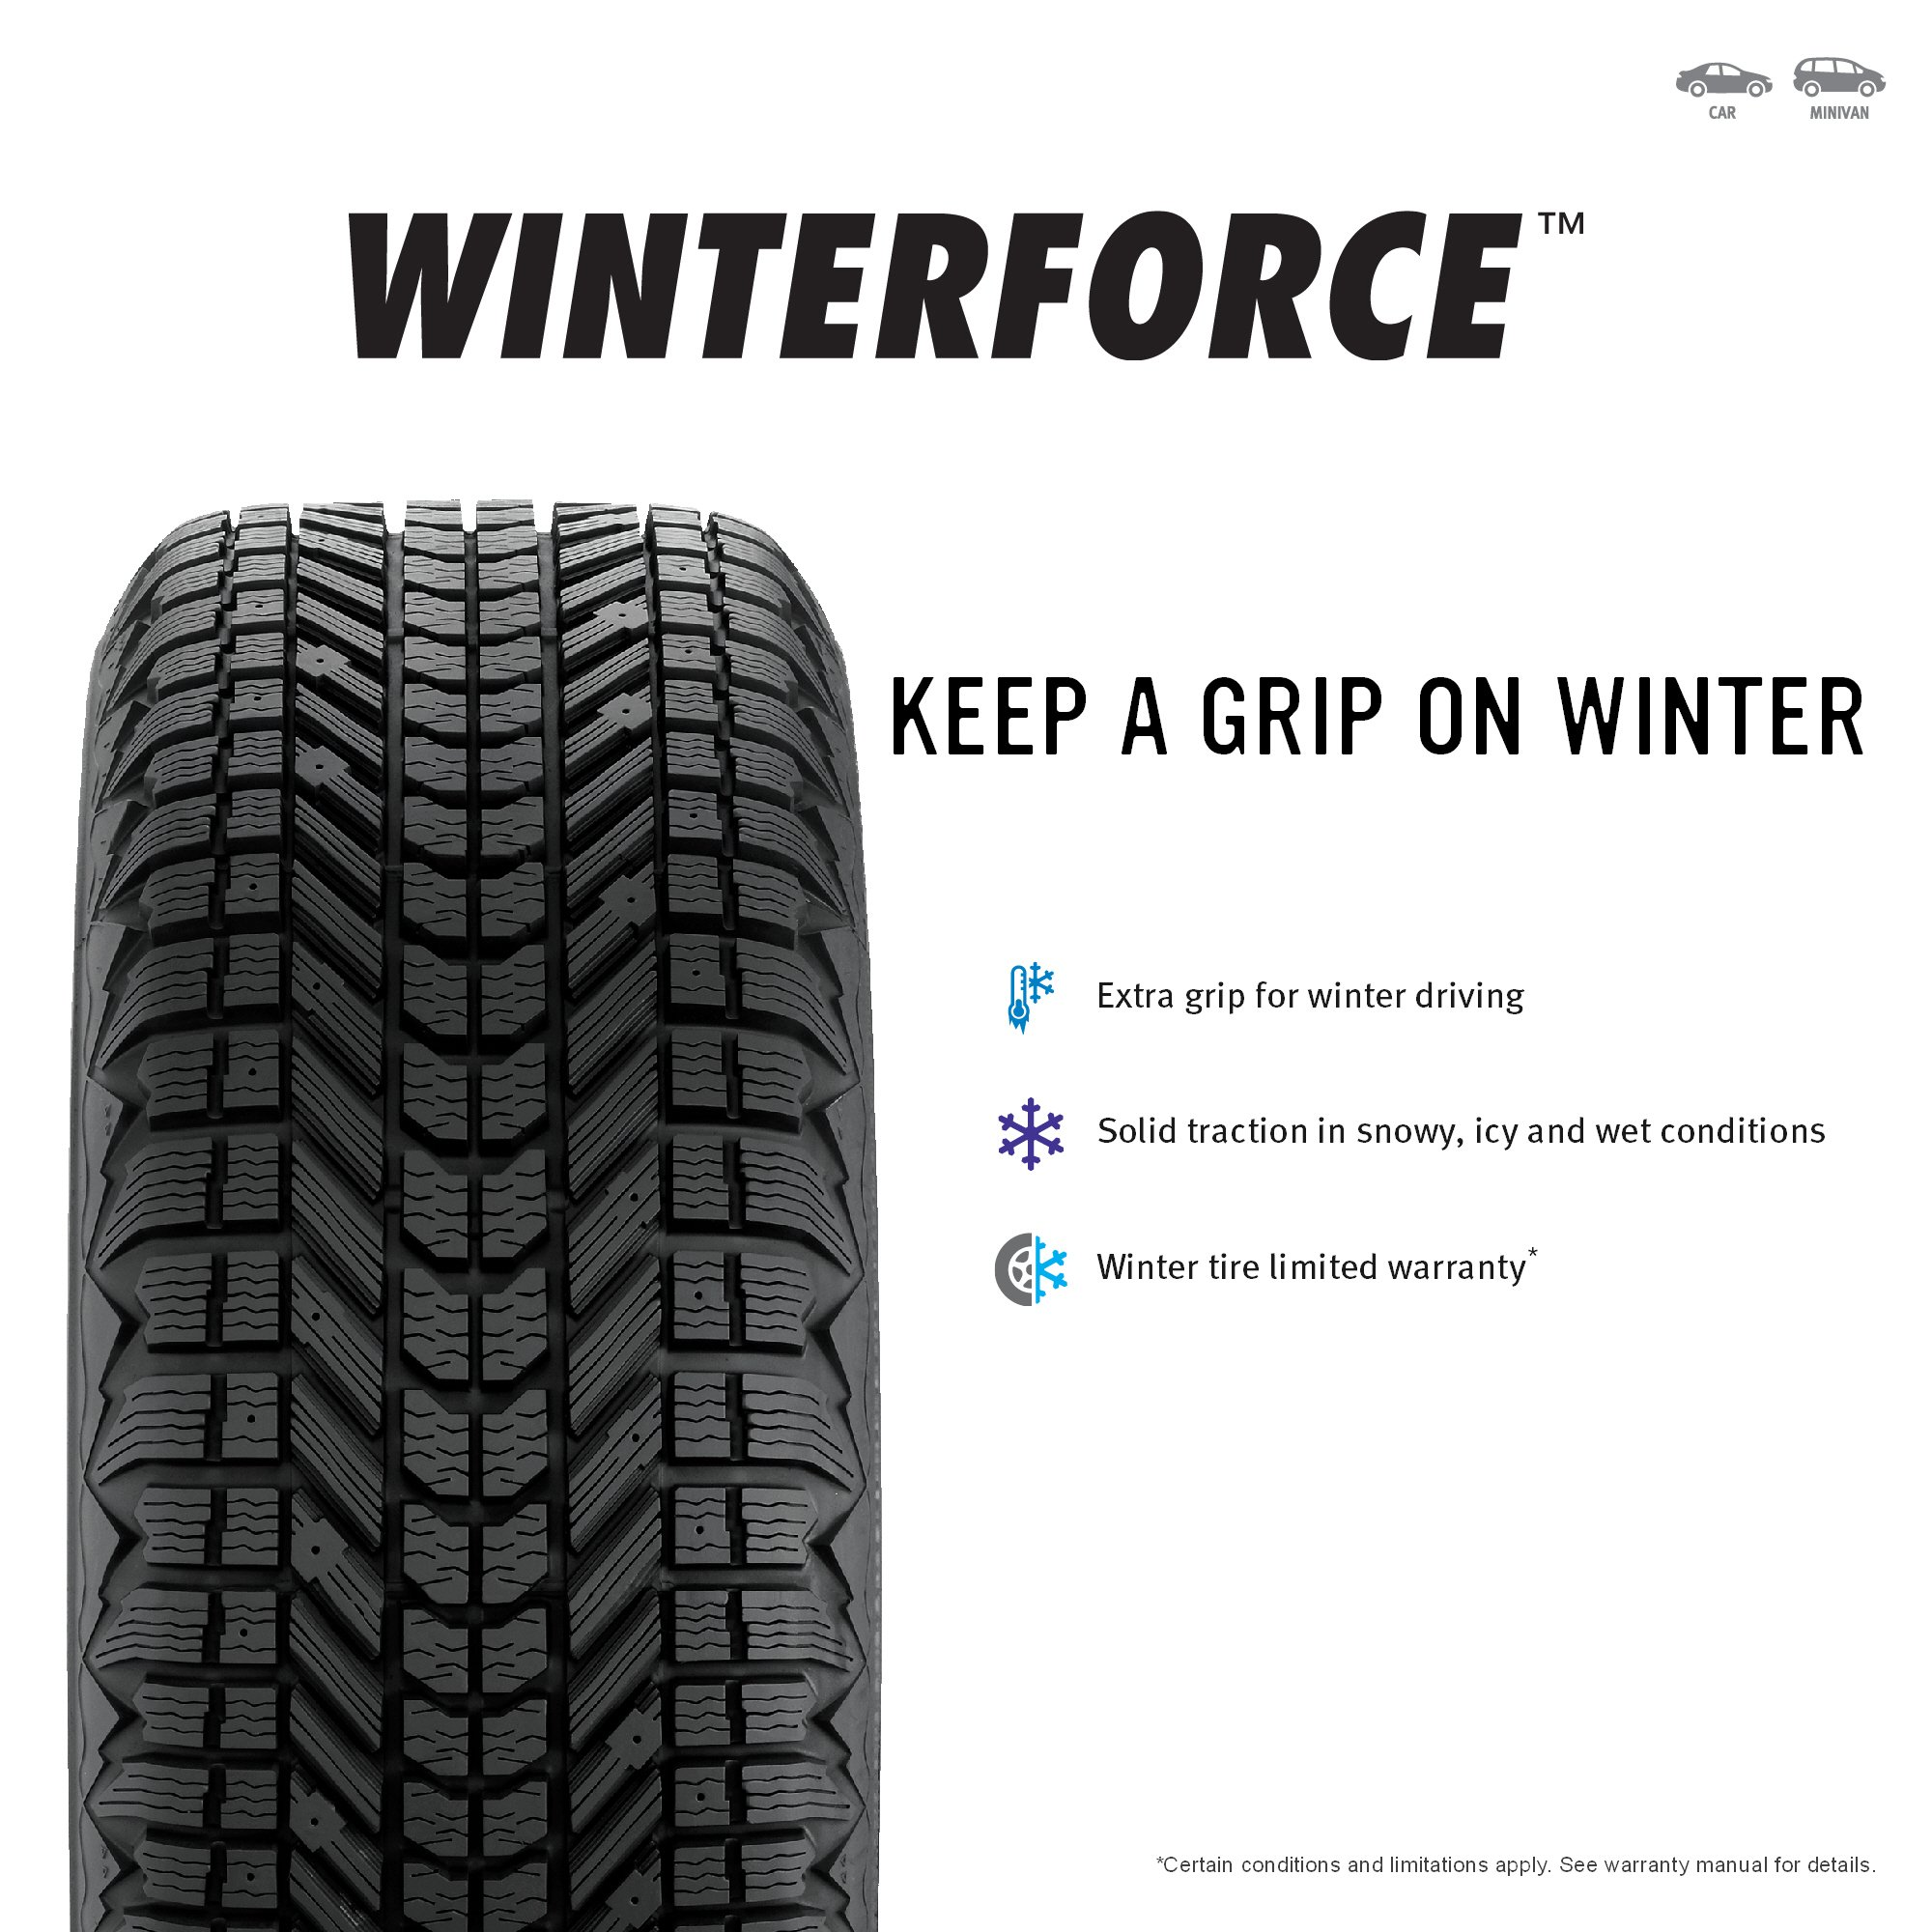 Firestone Winterforce Winter Radial Tire - P205/75R14 95S